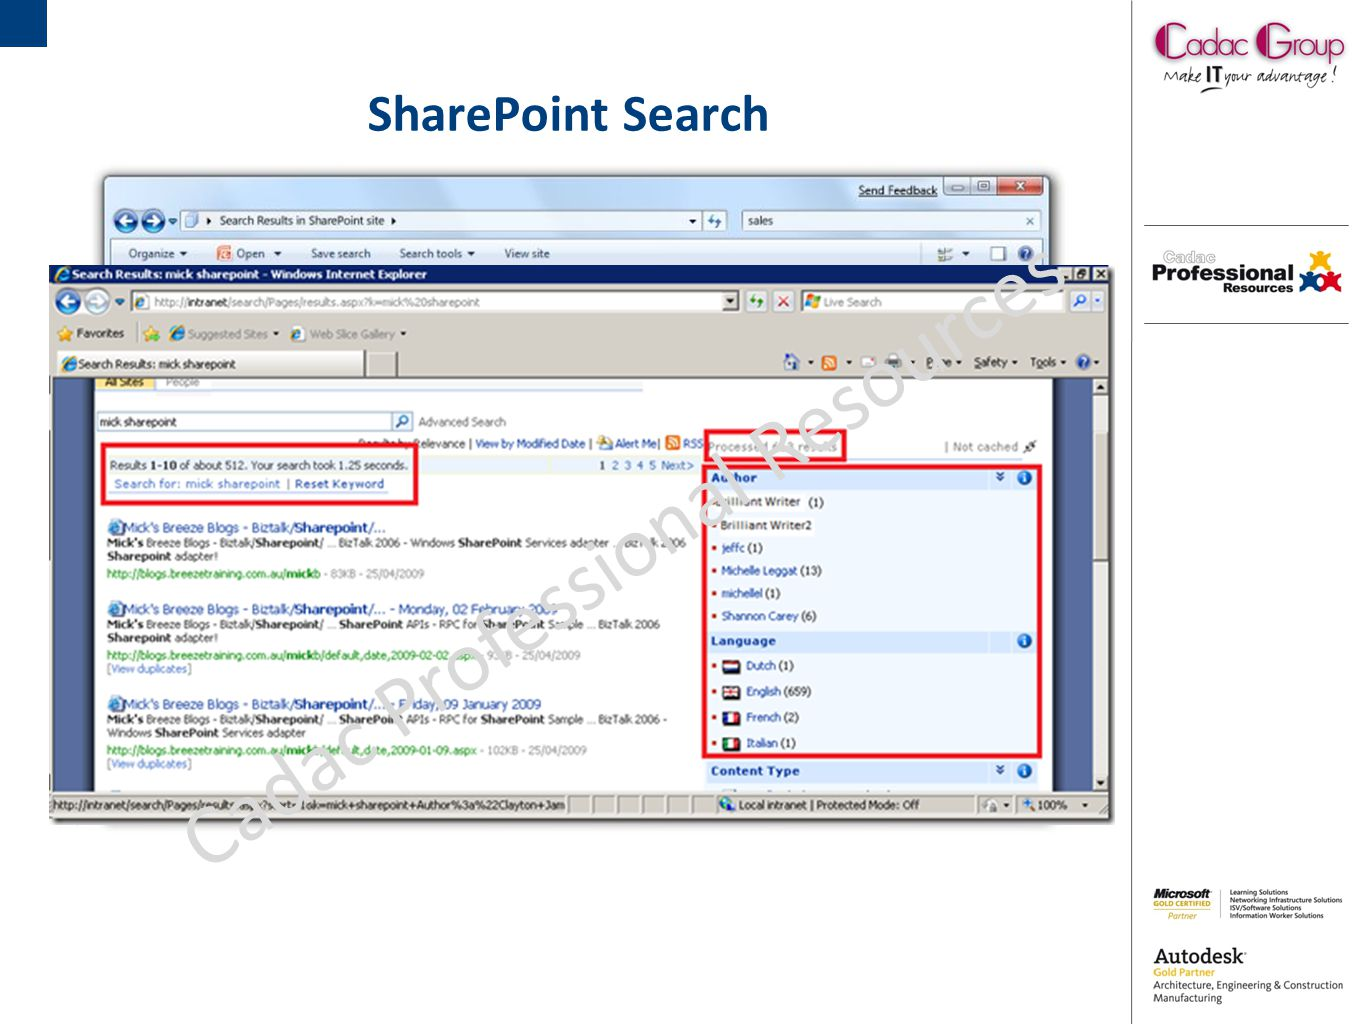 SharePoint Insights Cadac Professional Resources